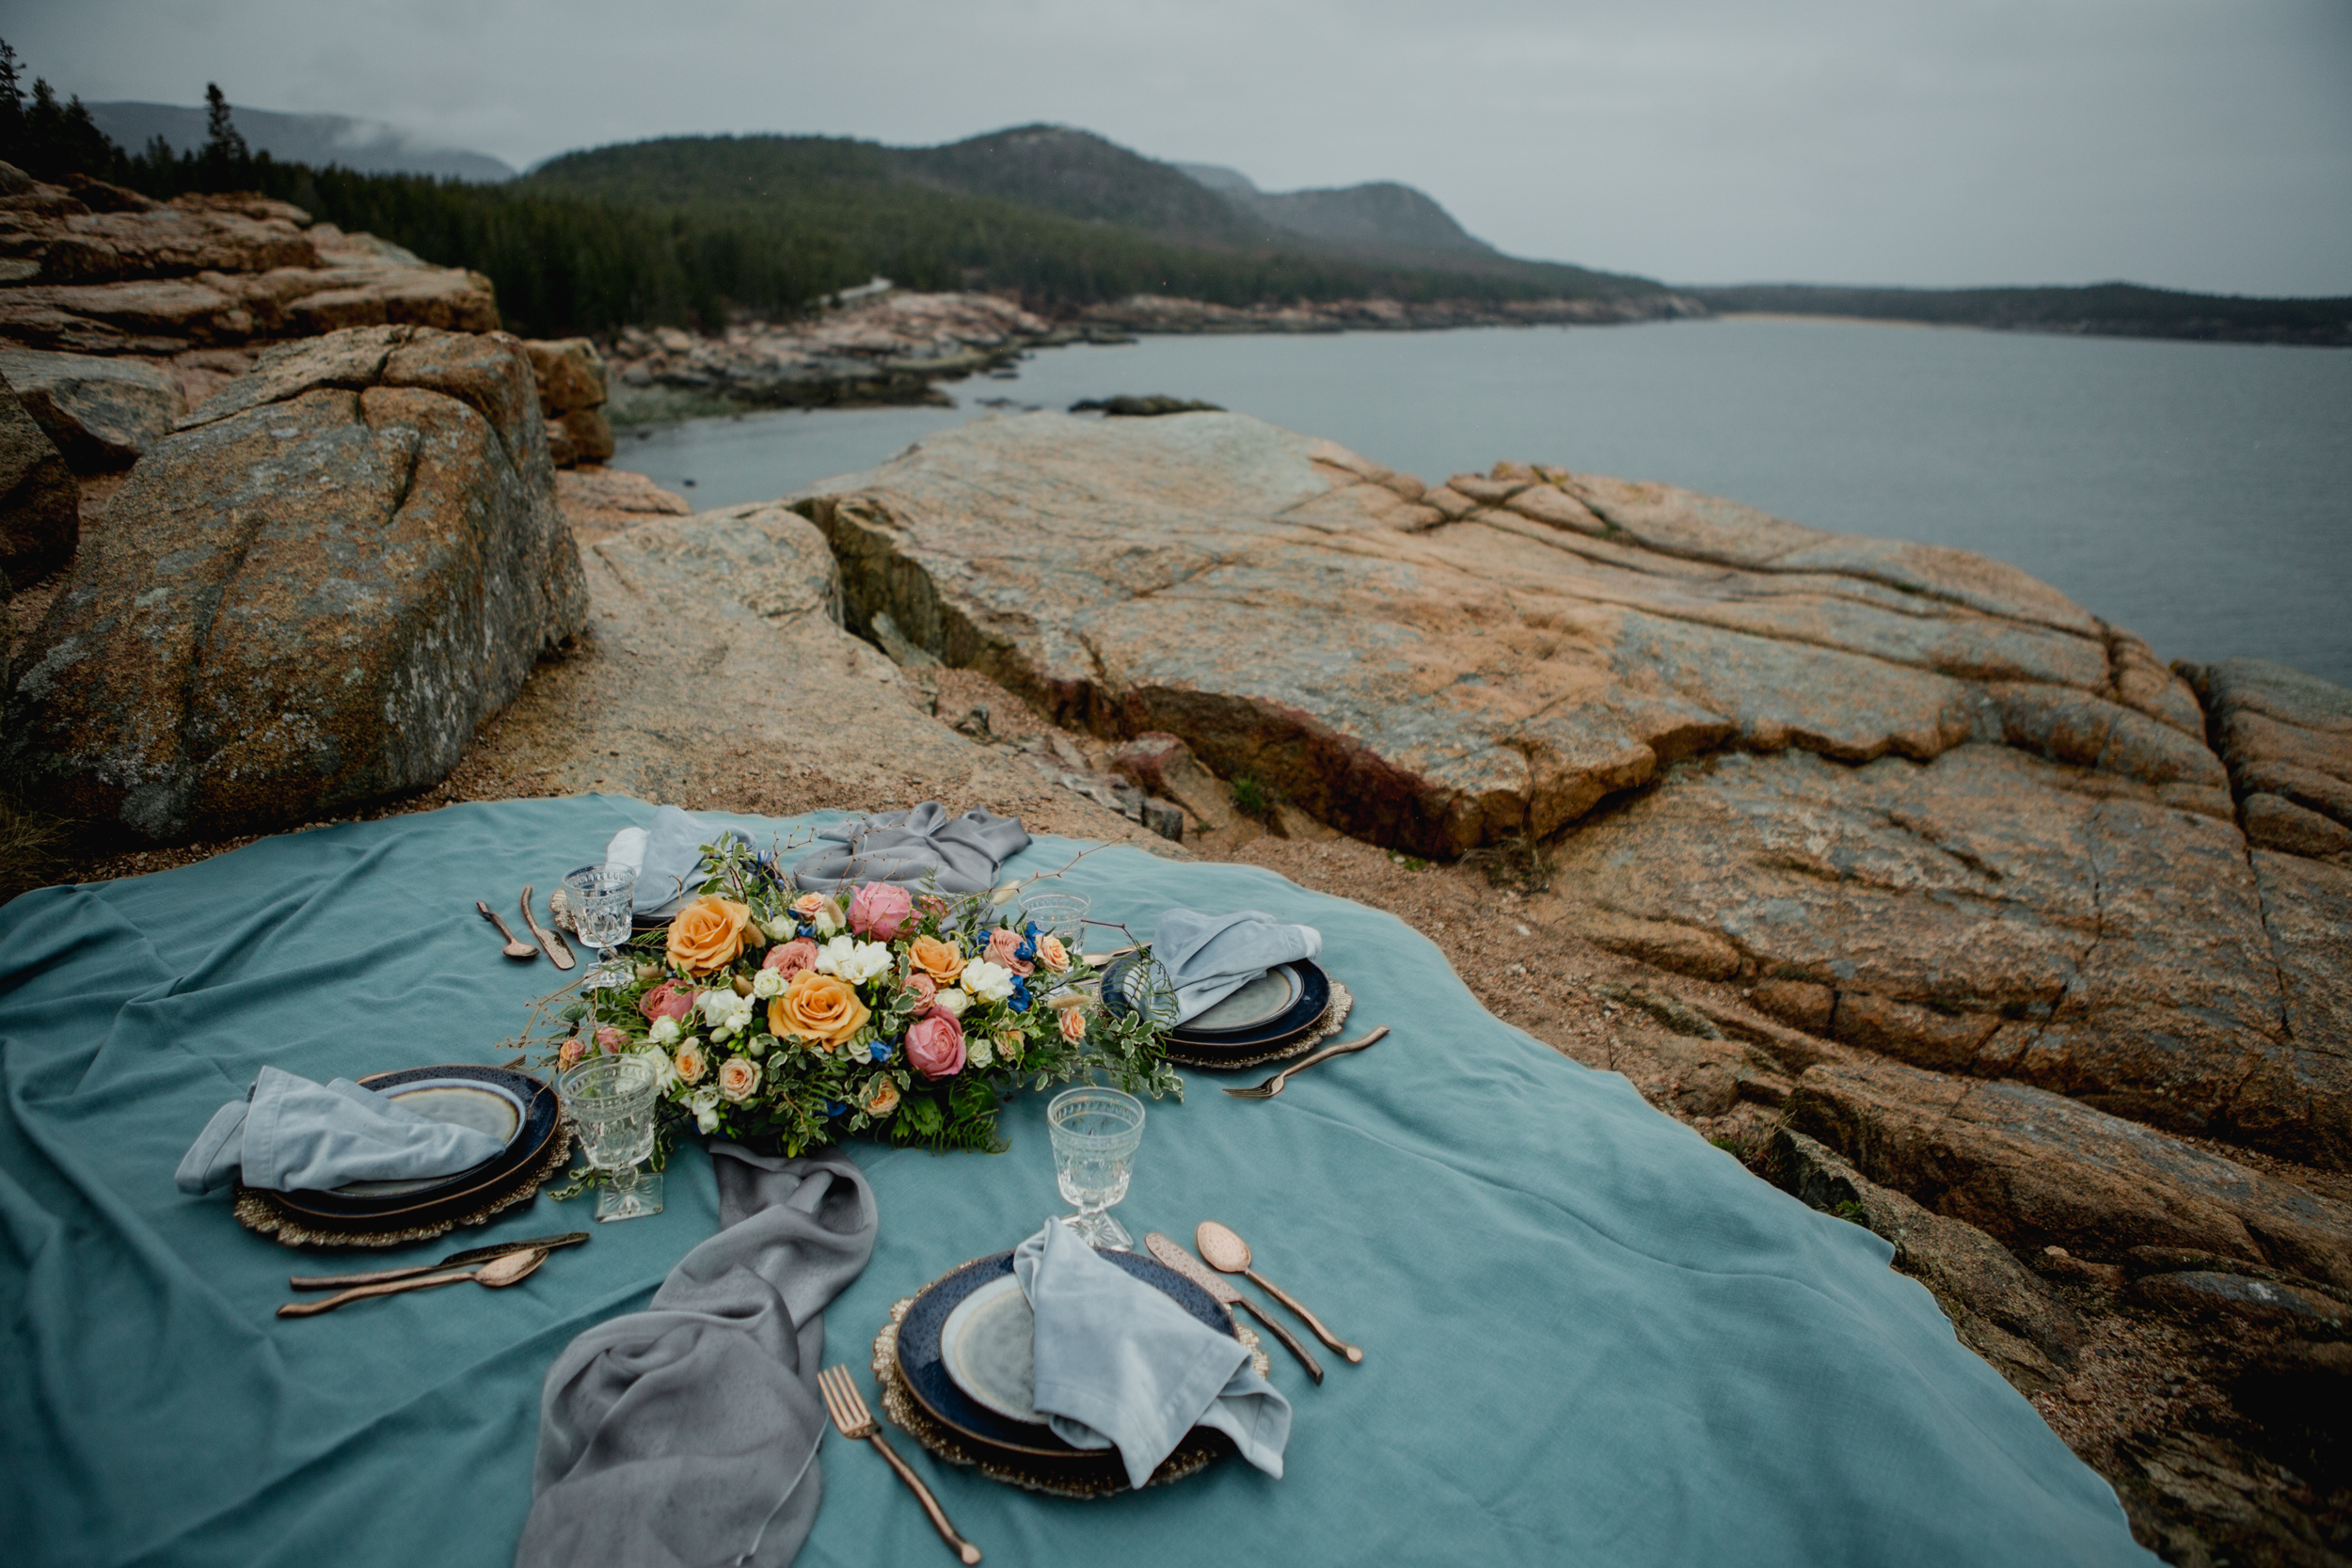 Acadia-National-Park-Wedding-3.jpg